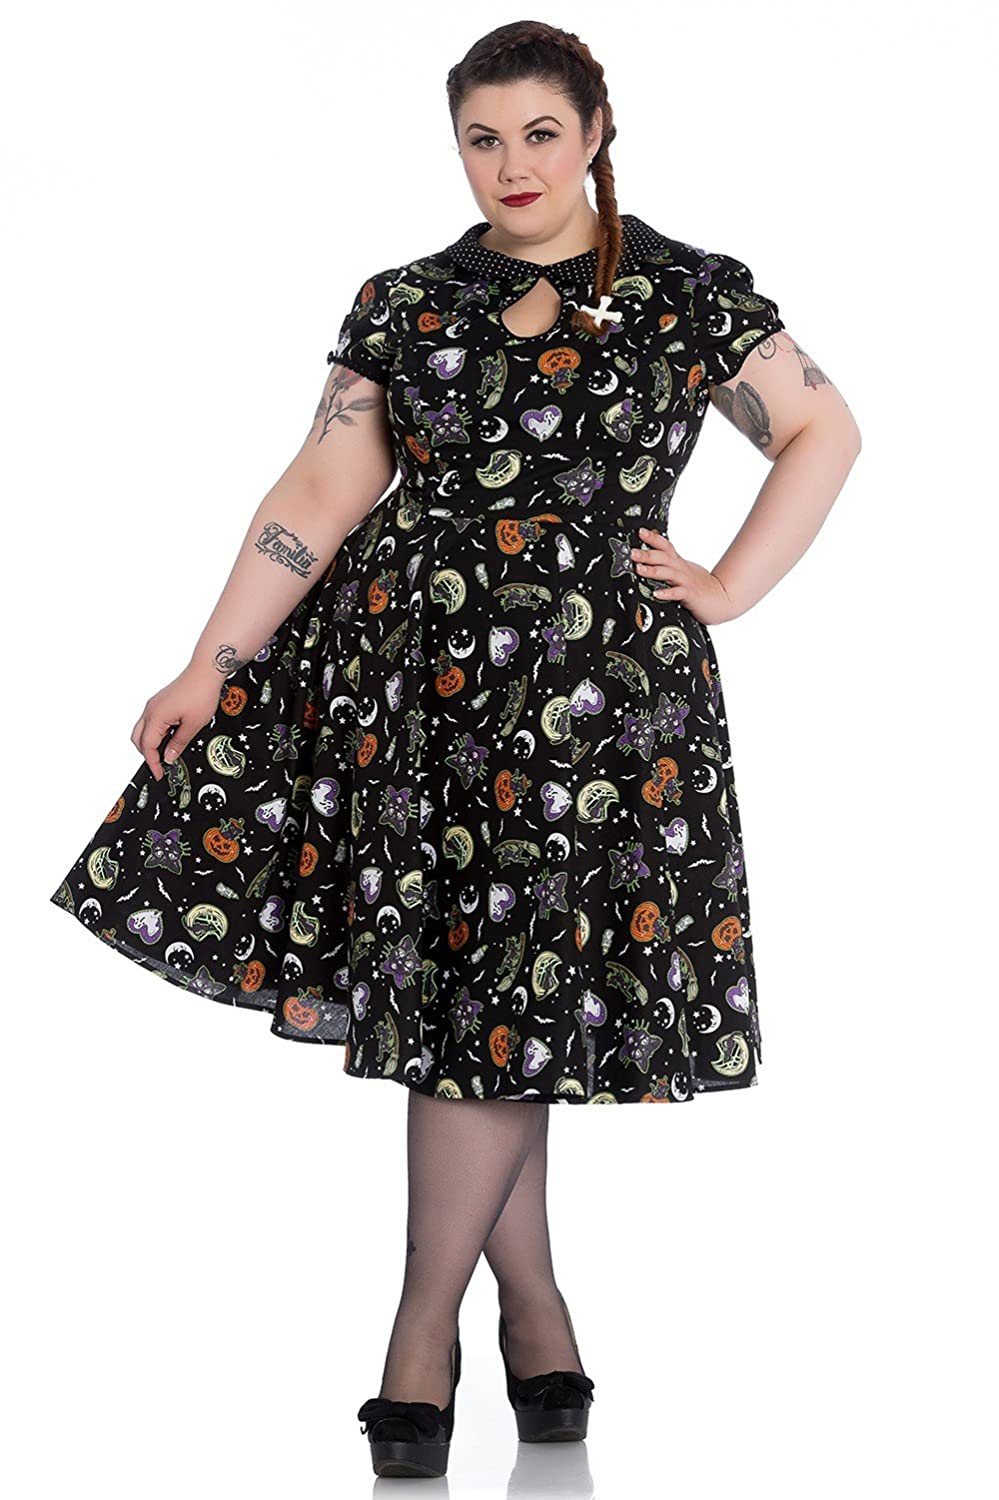 50 Vintage Halloween Costume Ideas Hell Bunny Plus Size Gothic Halloween Black Cat Salem 50s Dress $80.99 AT vintagedancer.com